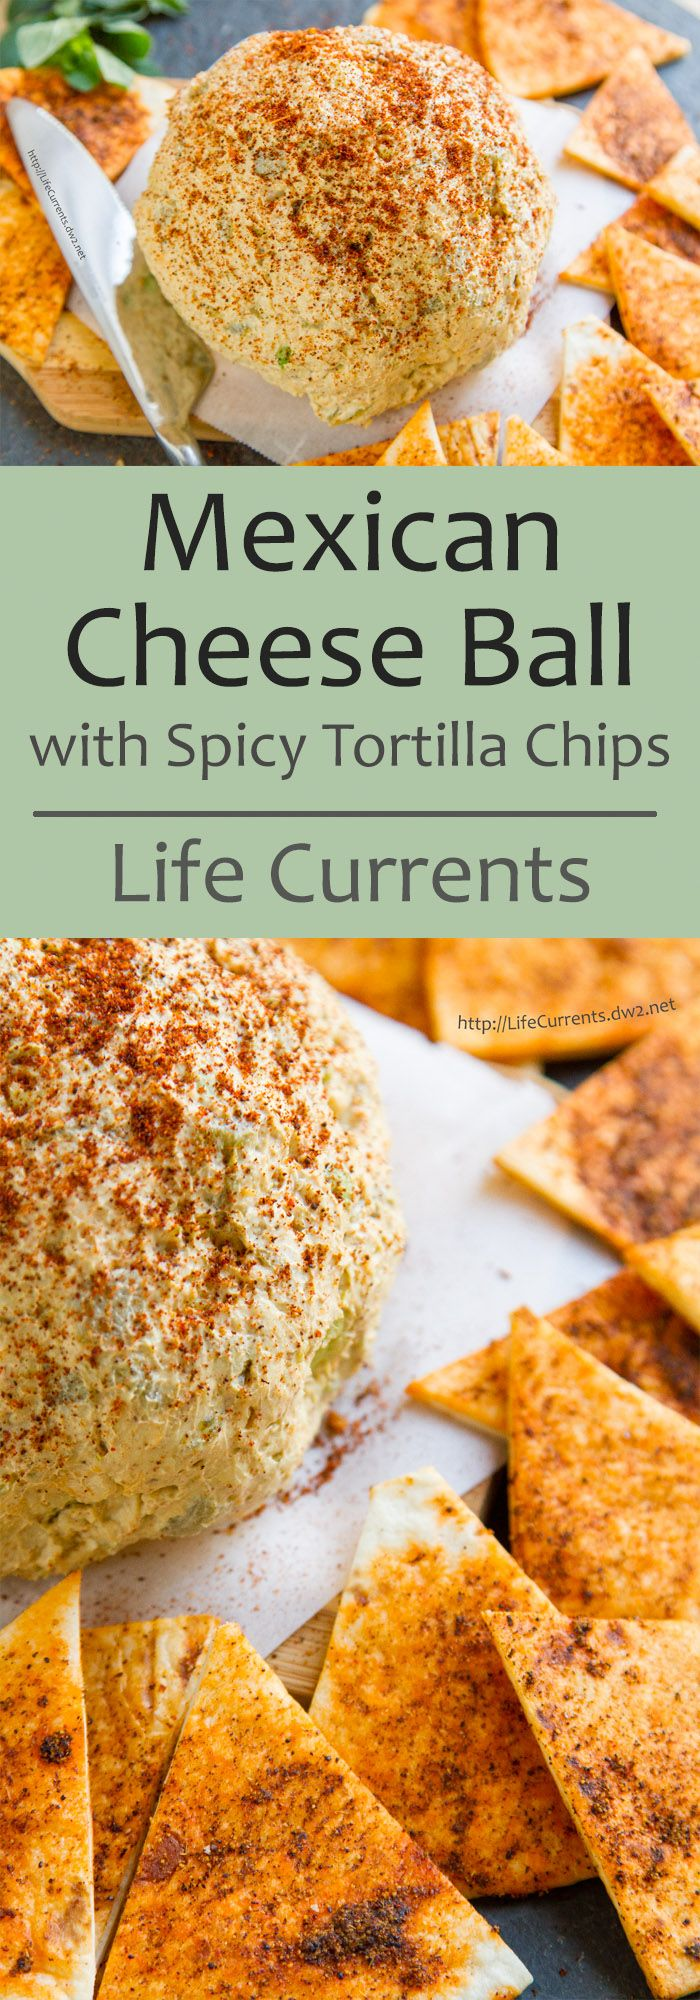 Mexican Cheese Ball with Spicy Tortilla Chips -- a fun and easy make-ahead appetizer that will leave everyone wanting the recipe!